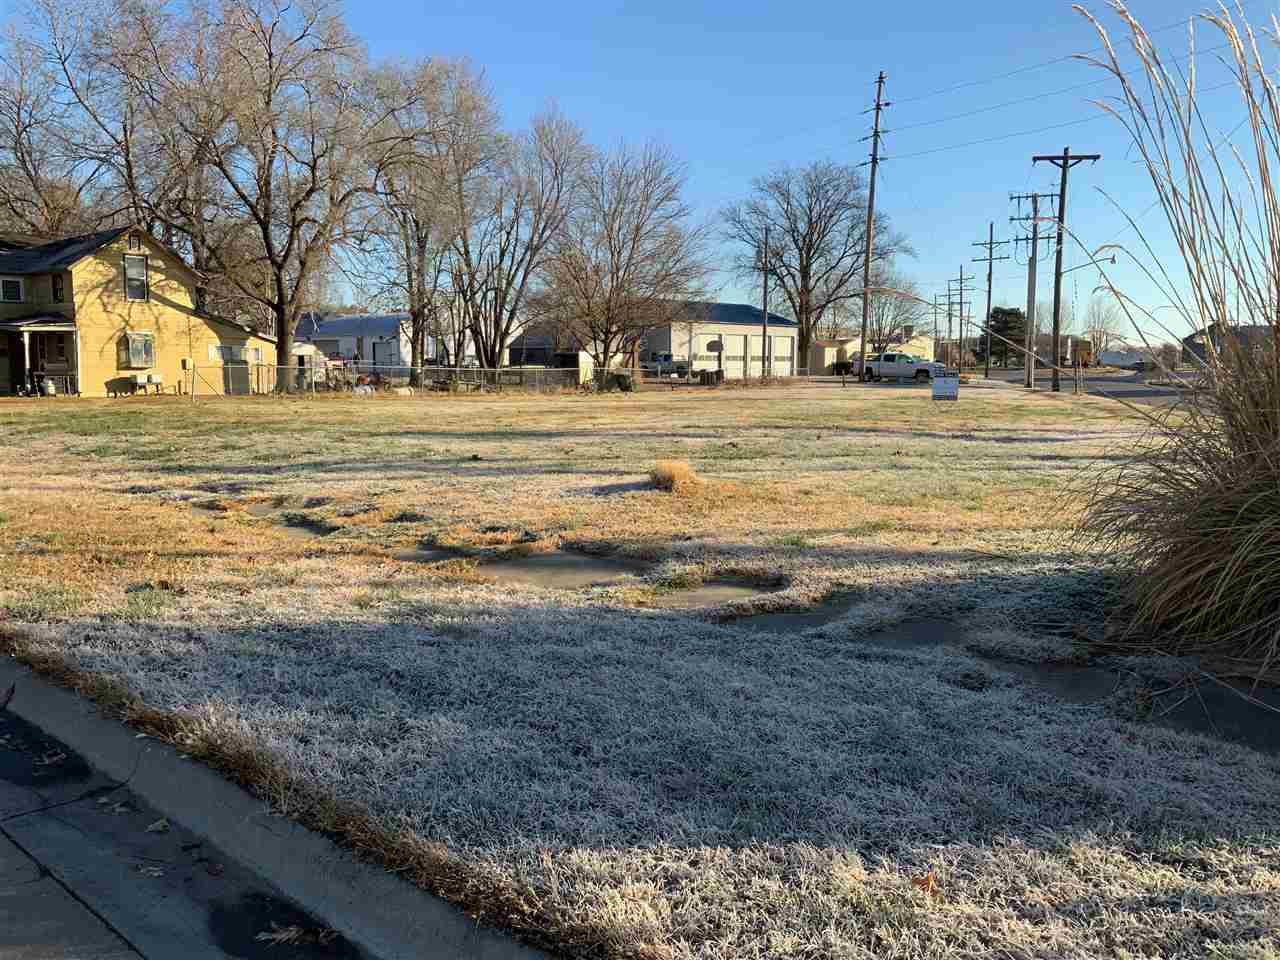 Looking to build in town? This is a rare opportunity to build in the original downtown section of Wamego. The lot sits on the corner of 3rd and Poplar.